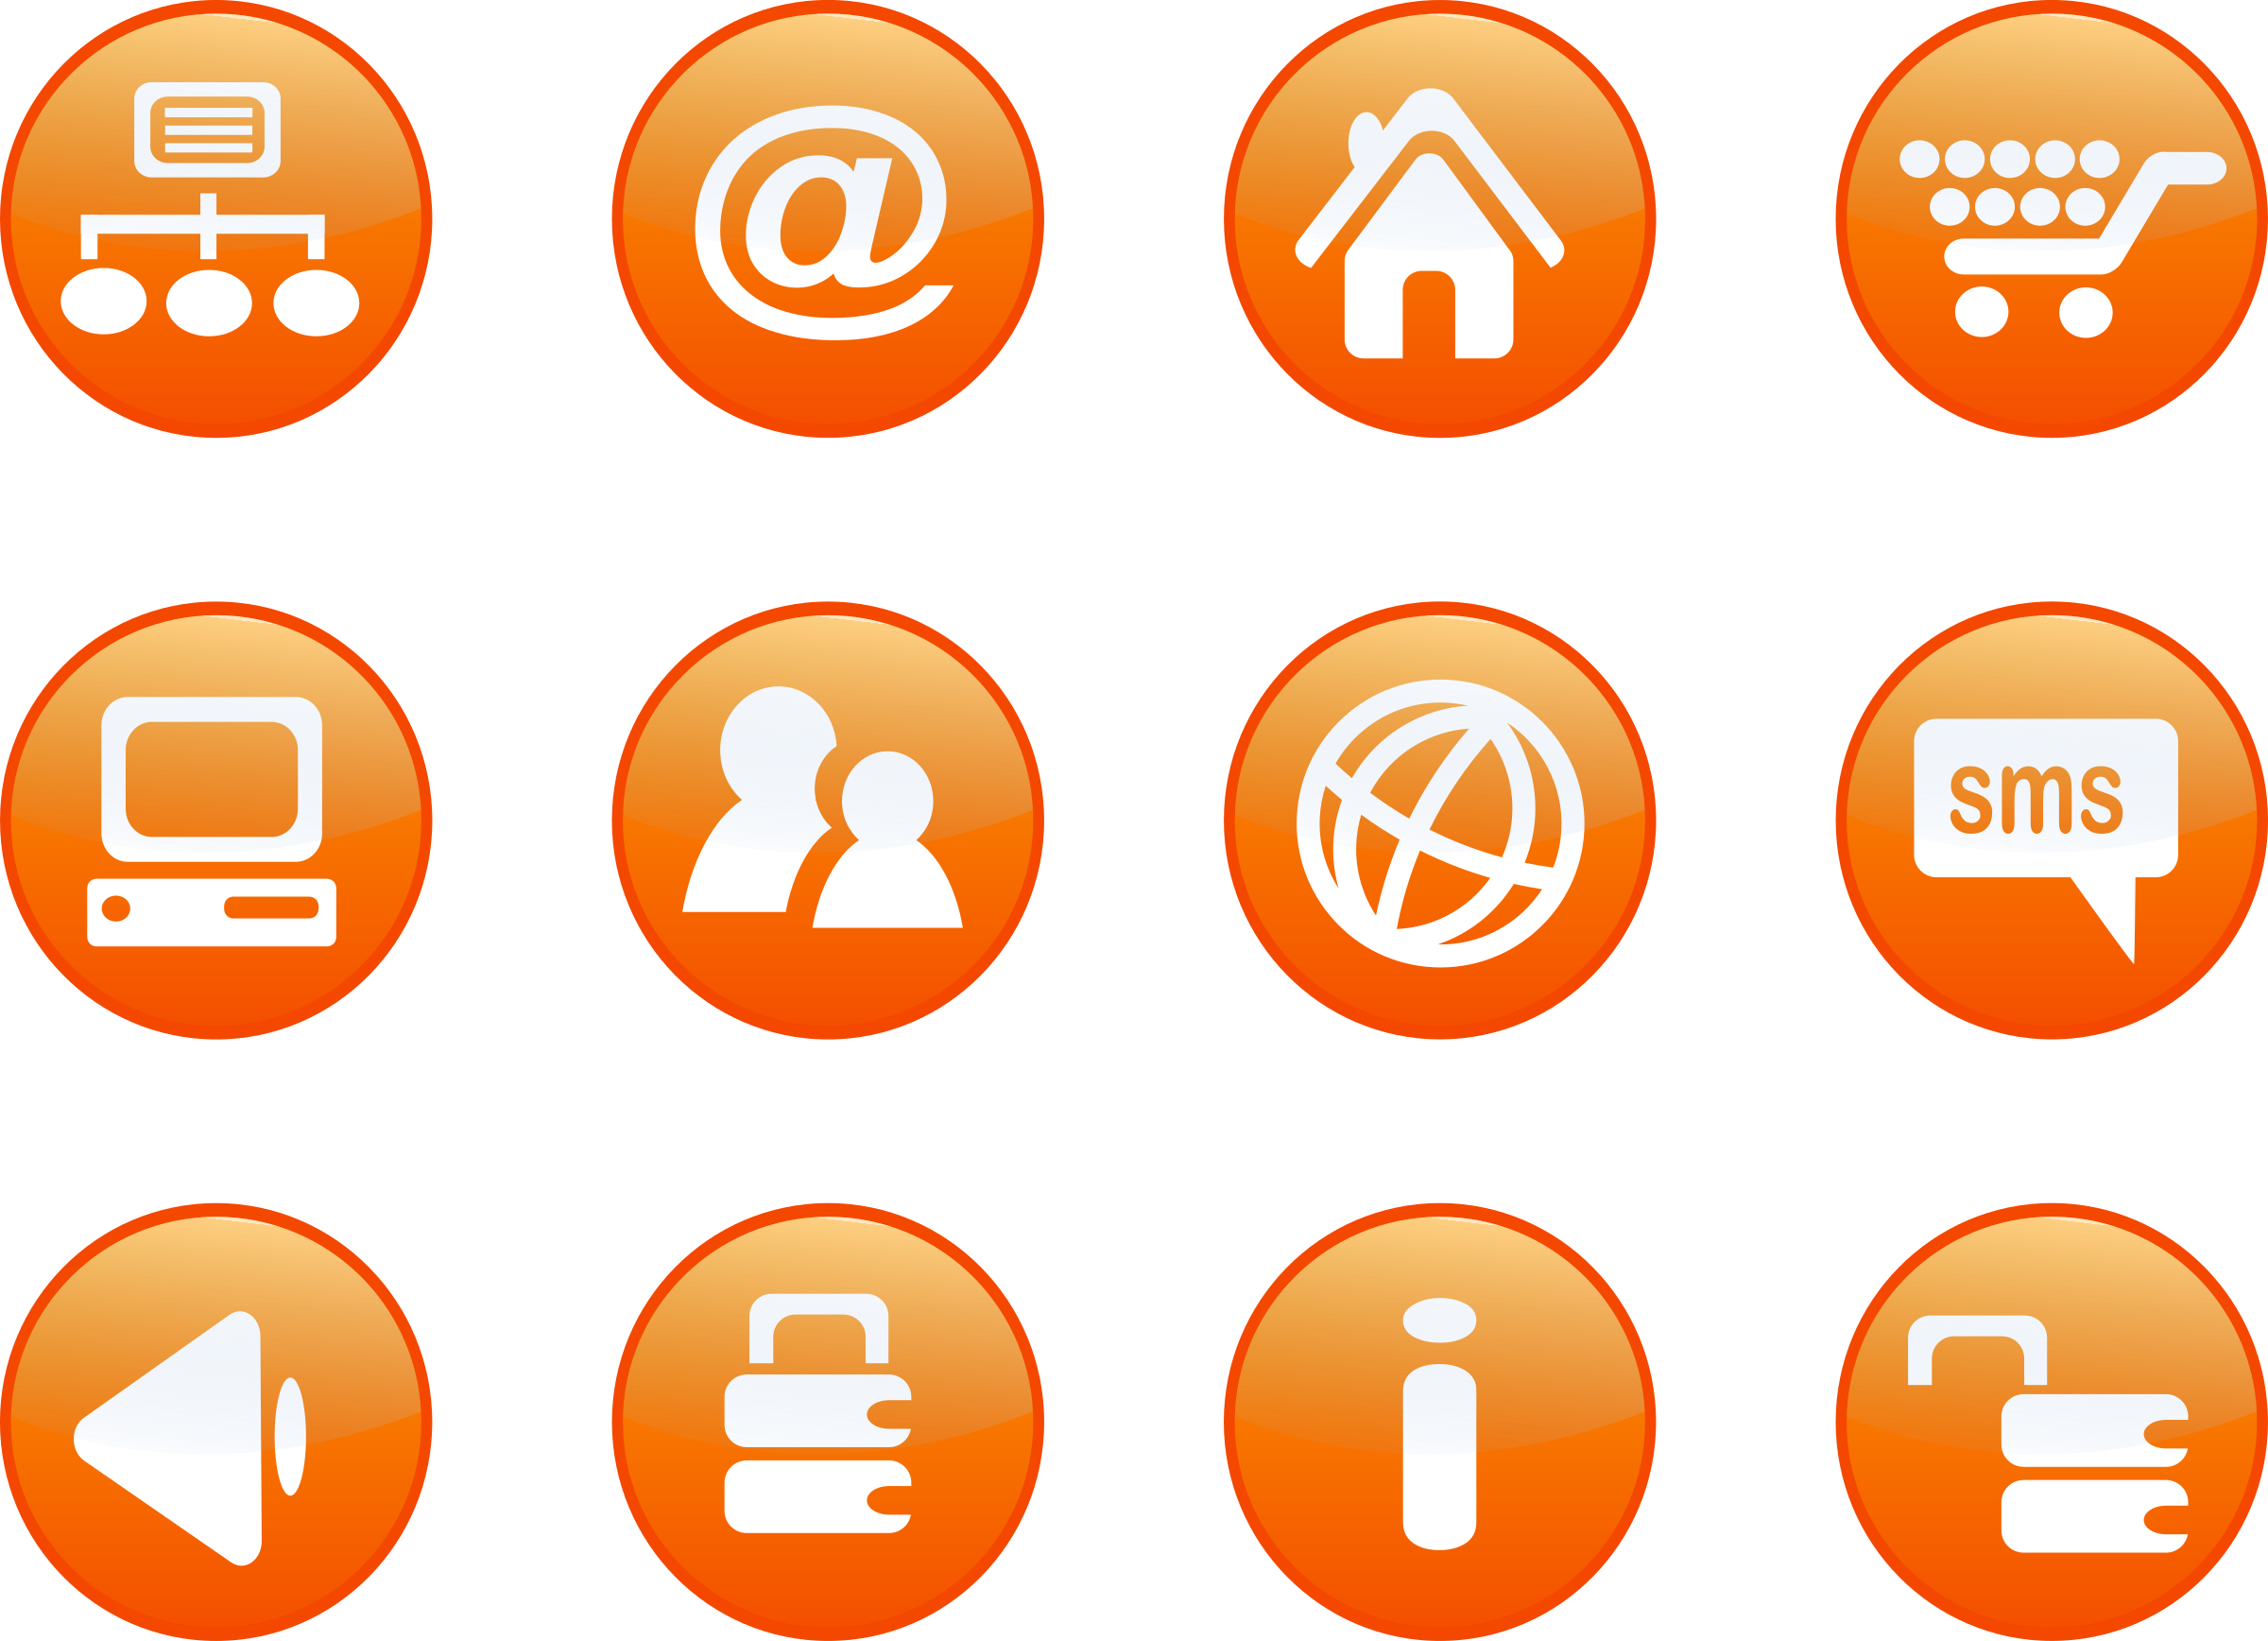 jpg Free clipart for web. Icons orange candy big